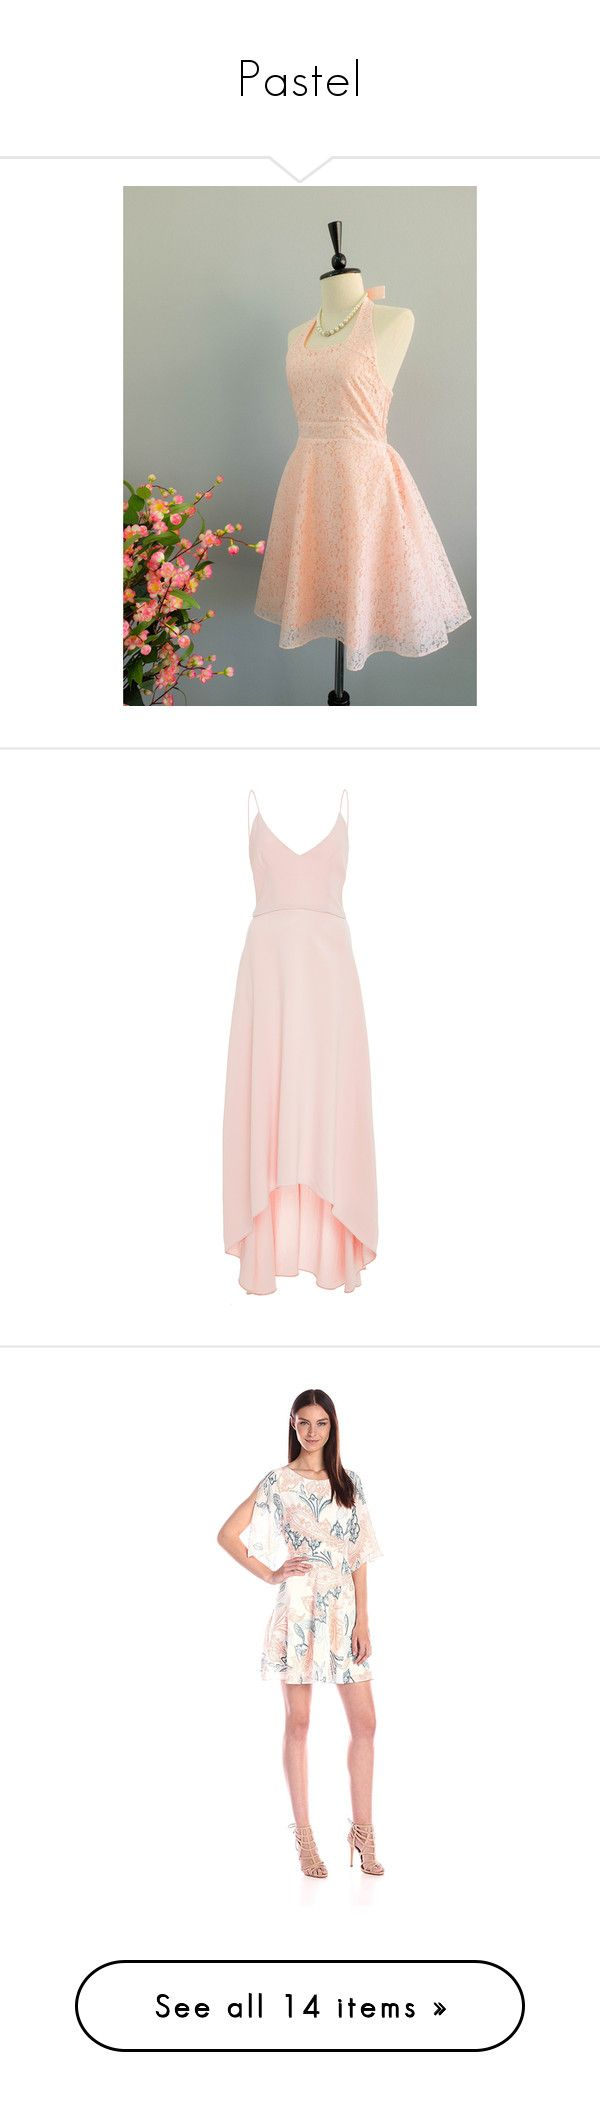 """""""Pastel"""" by ivelascoart ❤ liked on Polyvore featuring dresses, silver, women's clothing, lace dress, lace cocktail dresses, pink lace dress, short prom dresses, lace prom dresses, neutral and high low dresses"""